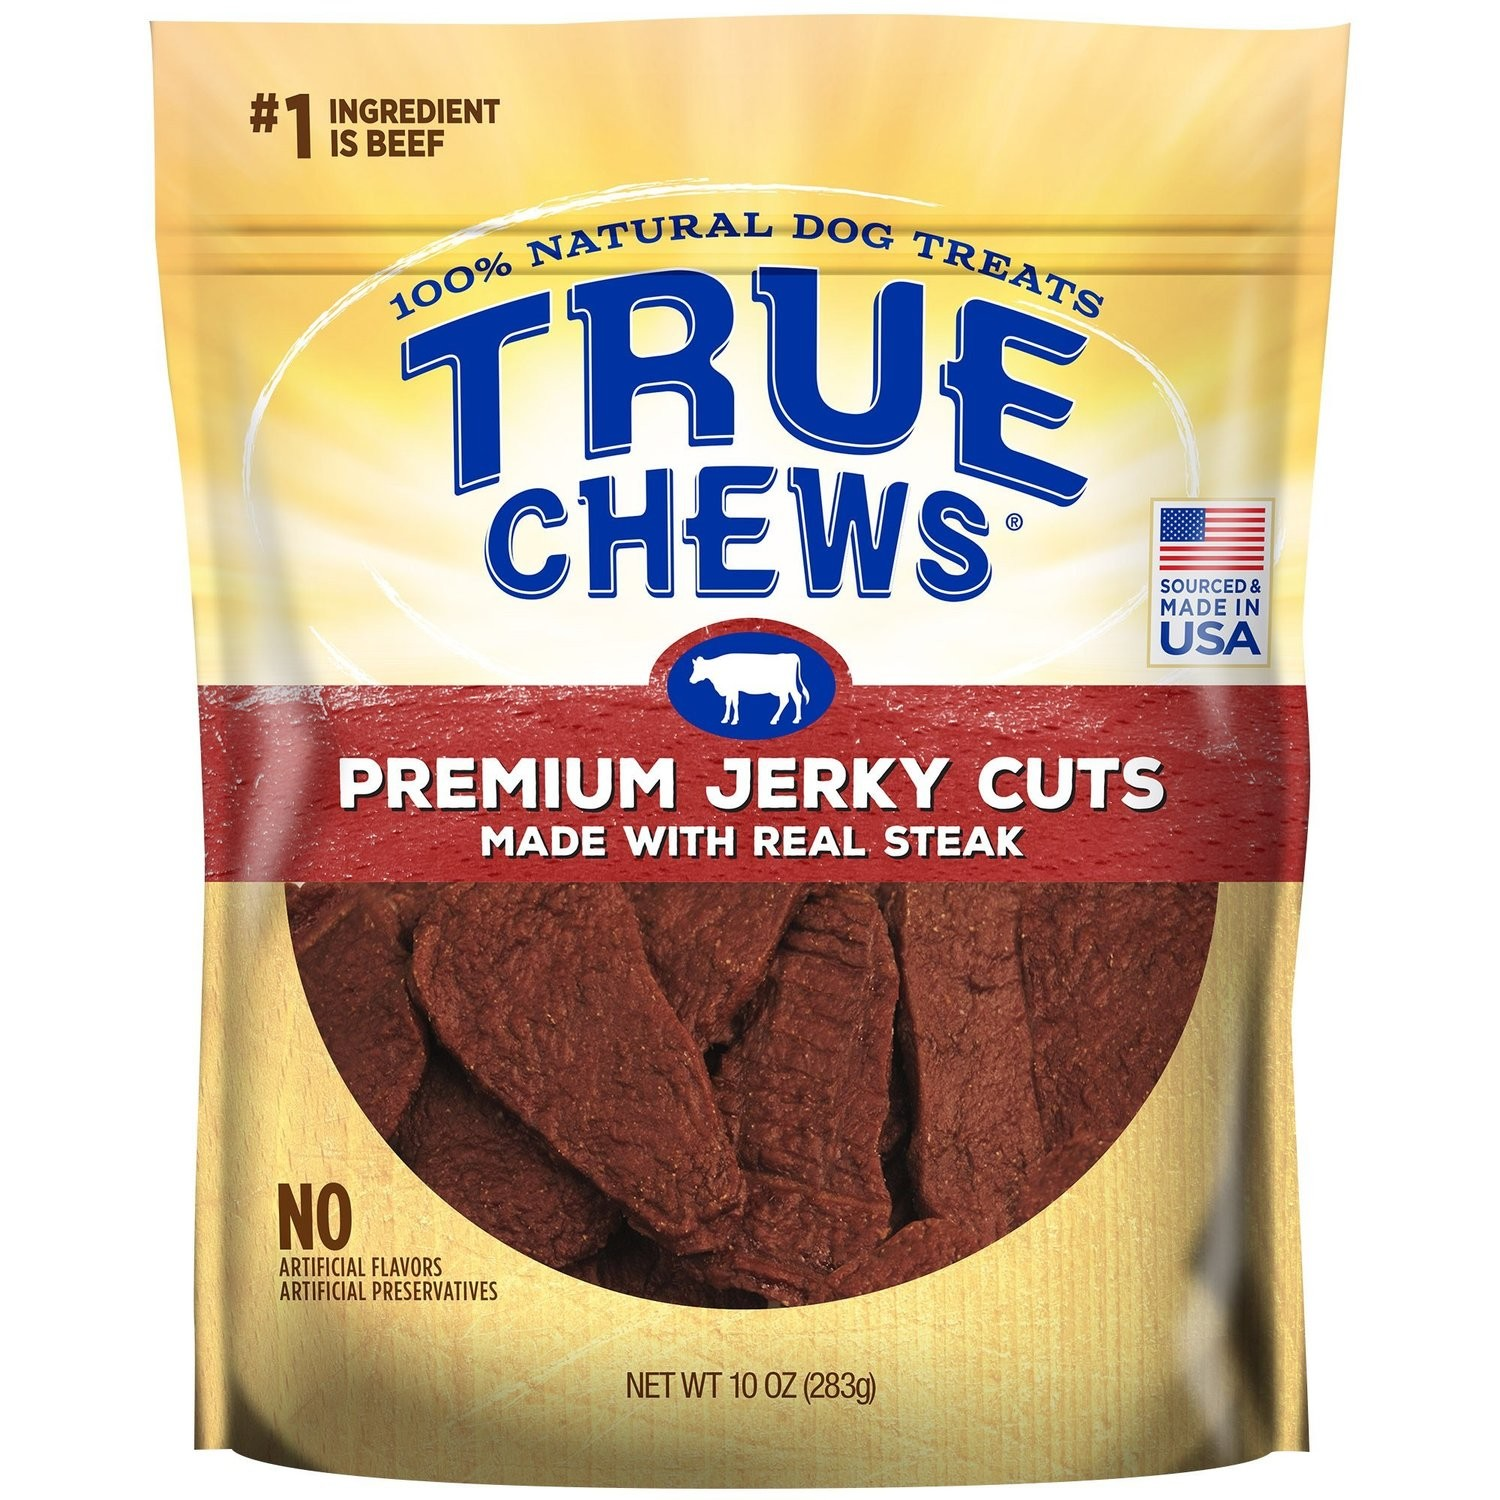 True Chews Premium Jerky Cuts Made with Real Steak Natural Dog Treats, 10 oz. (3/19) (T.A14)